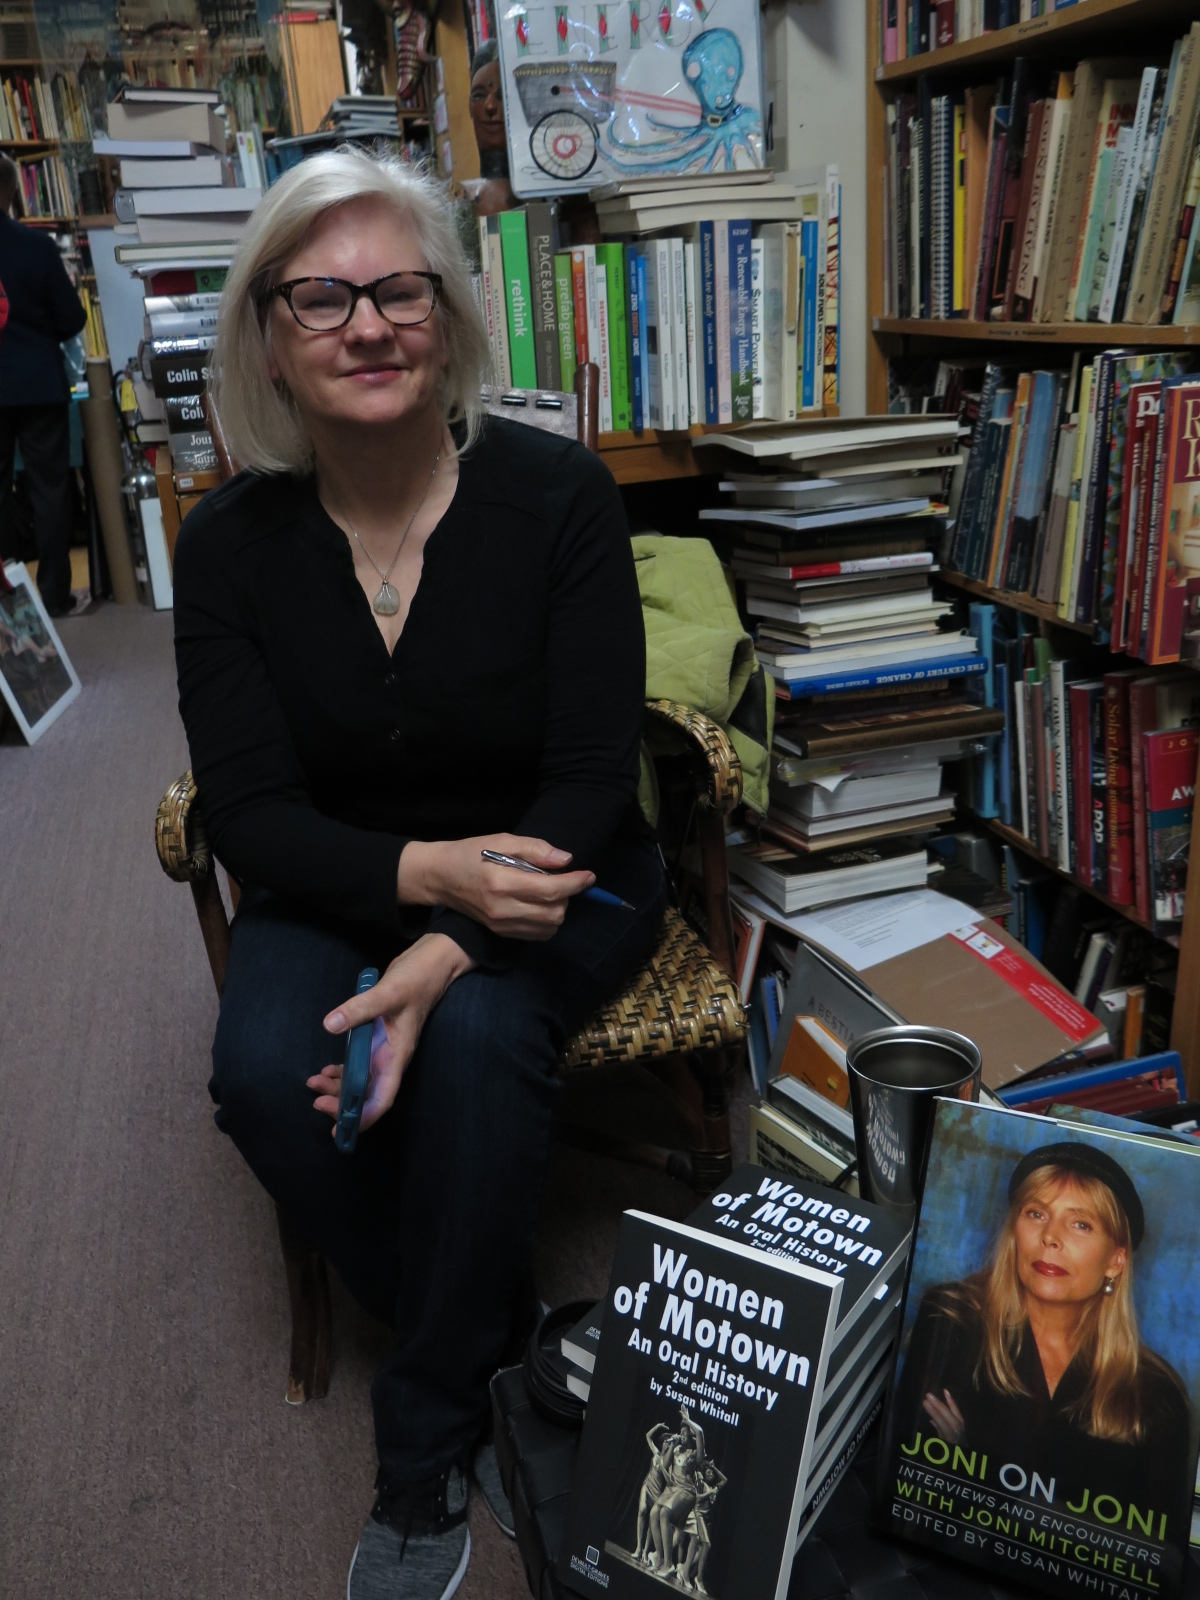 Author, Creem Magazine editor and Journalist Susan Whitall